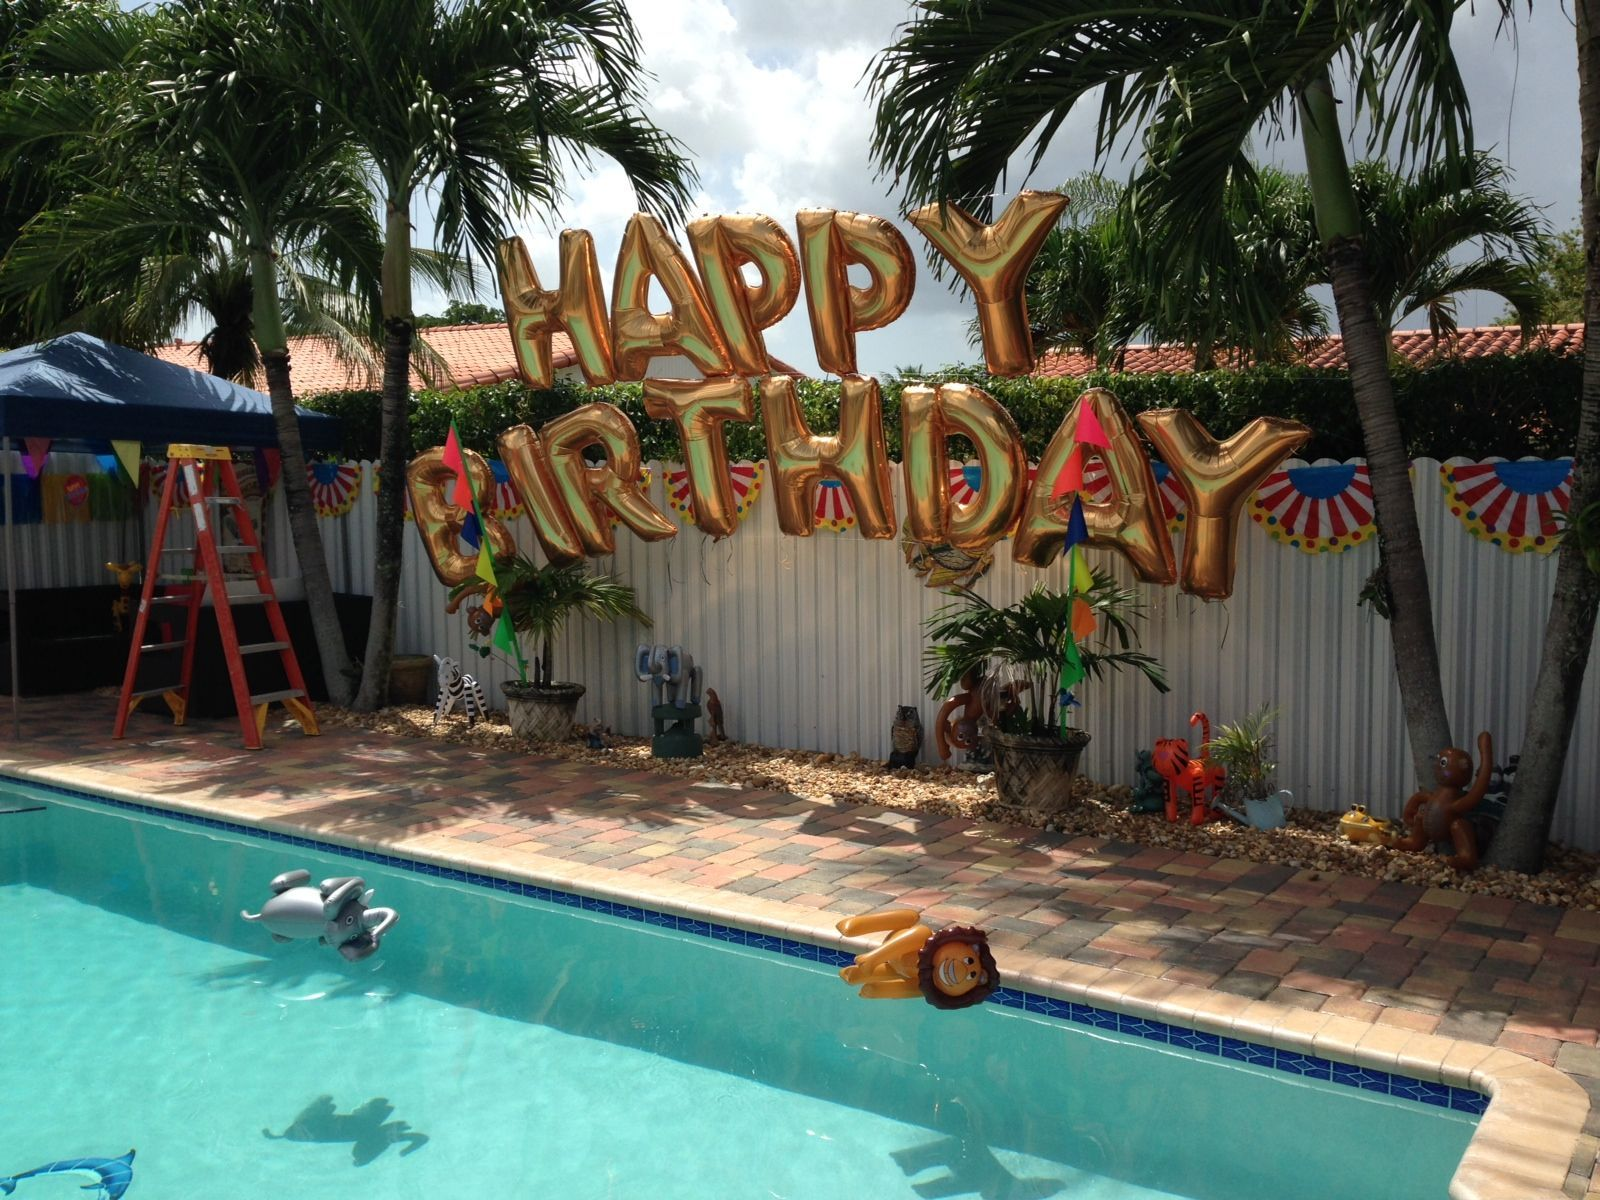 Pin By Nicole Cardenas On Best Pool Party Decorations Pool Party Adults Party Swimming Pool Sweet 16 Pool Parties